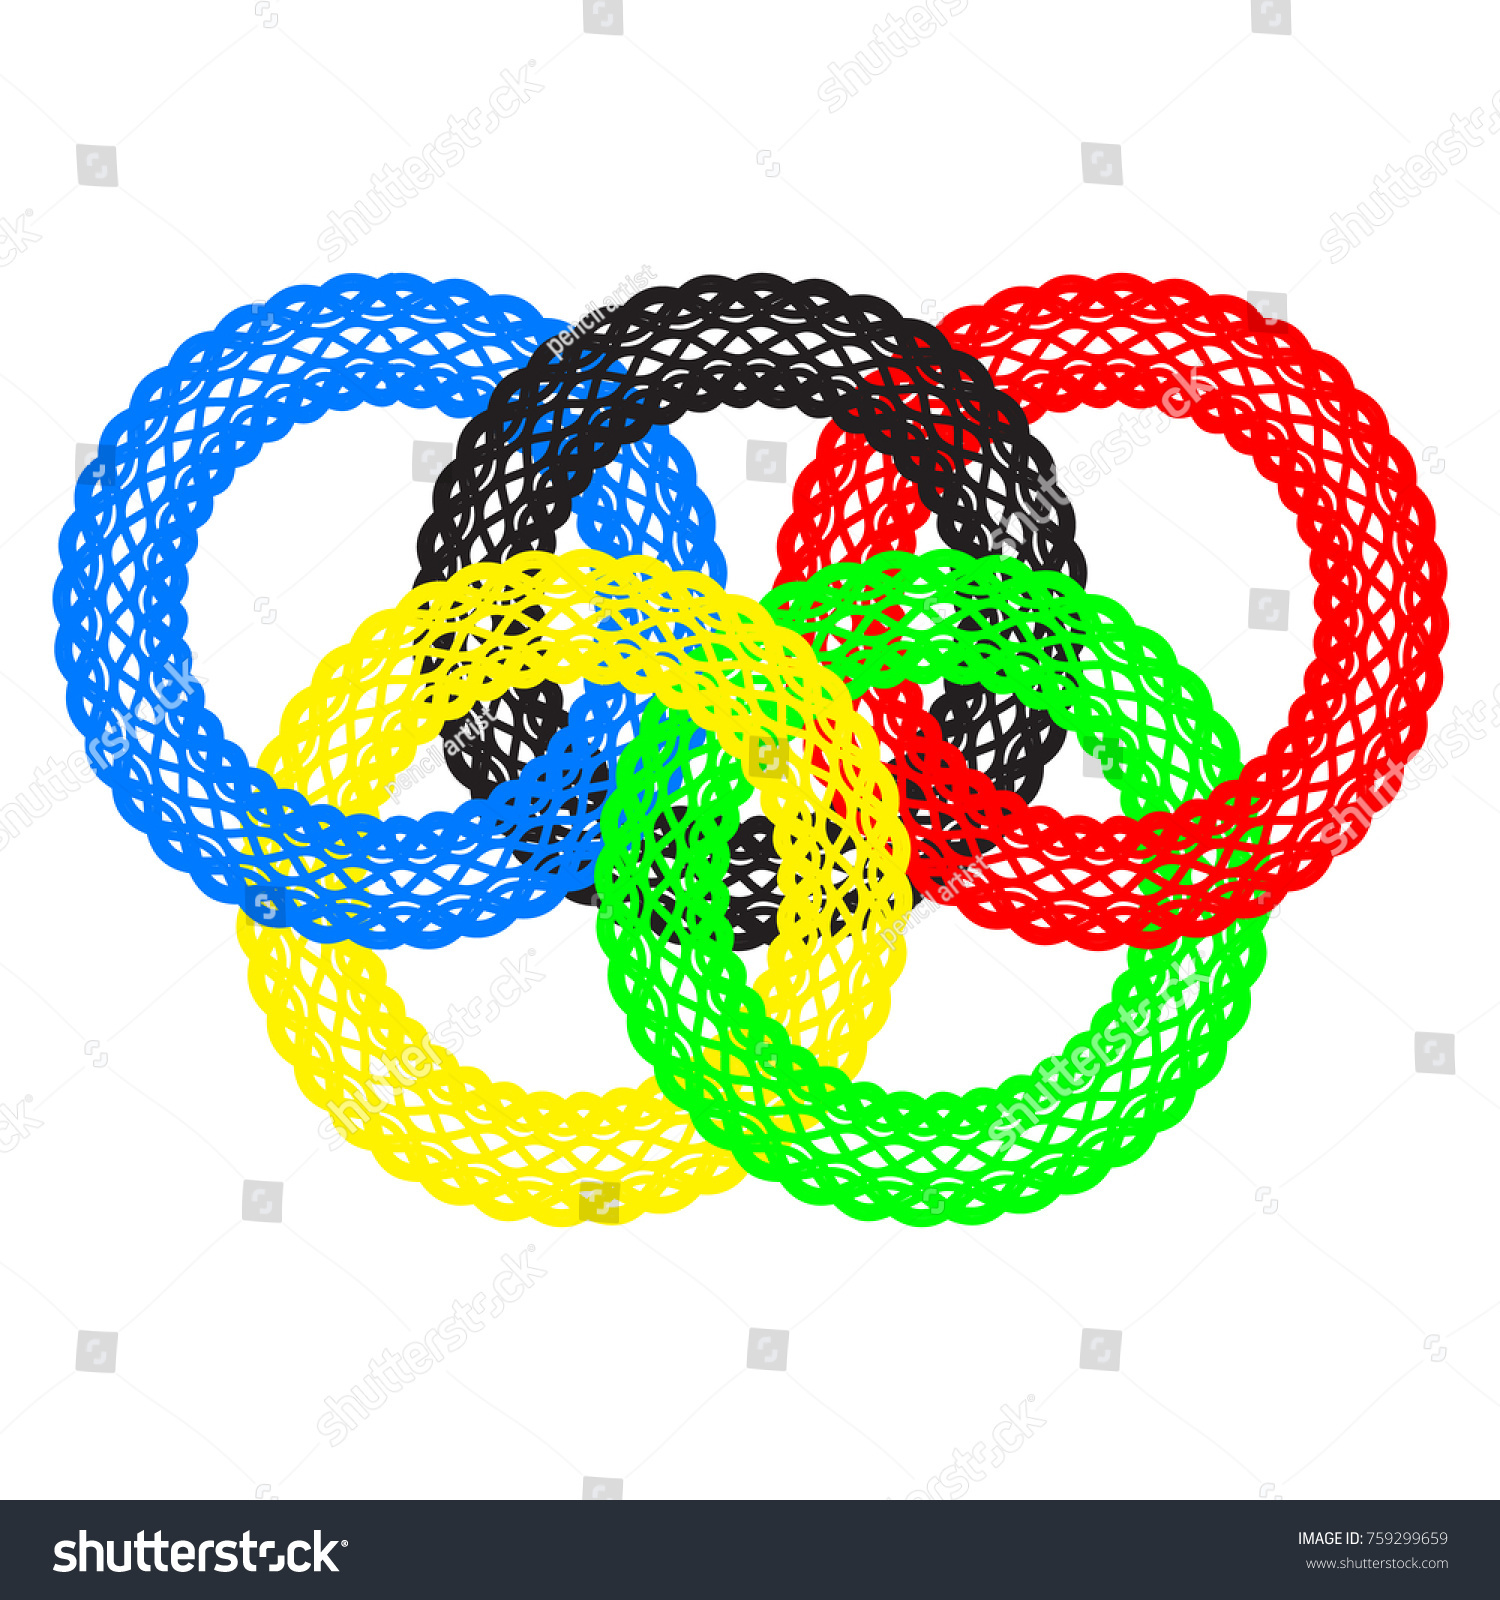 Lace olympic rings symbol olympics stock vector 759299659 shutterstock lace olympic rings a symbol of the olympics buycottarizona Image collections